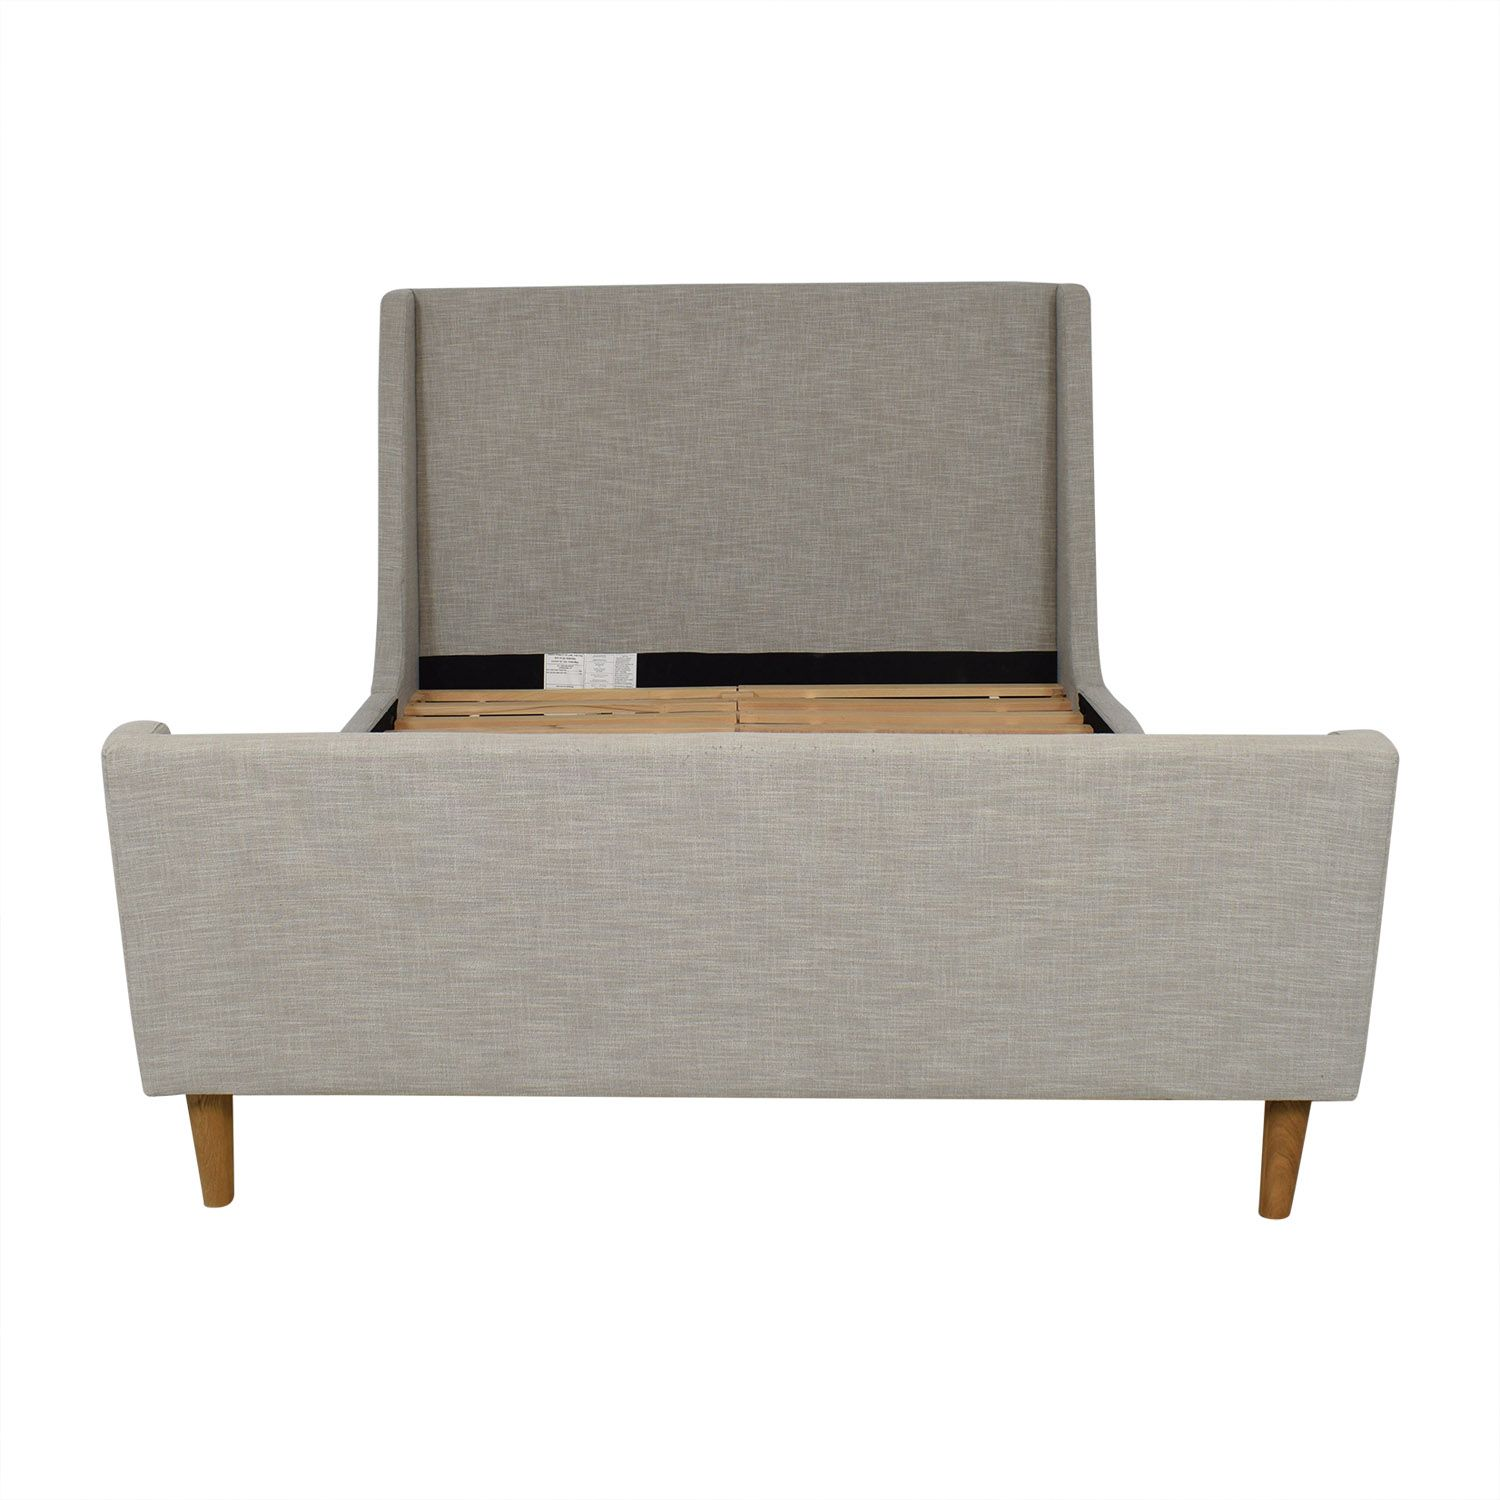 West Elm Upholstered Queen Sleigh Bed in 2020 Sleigh